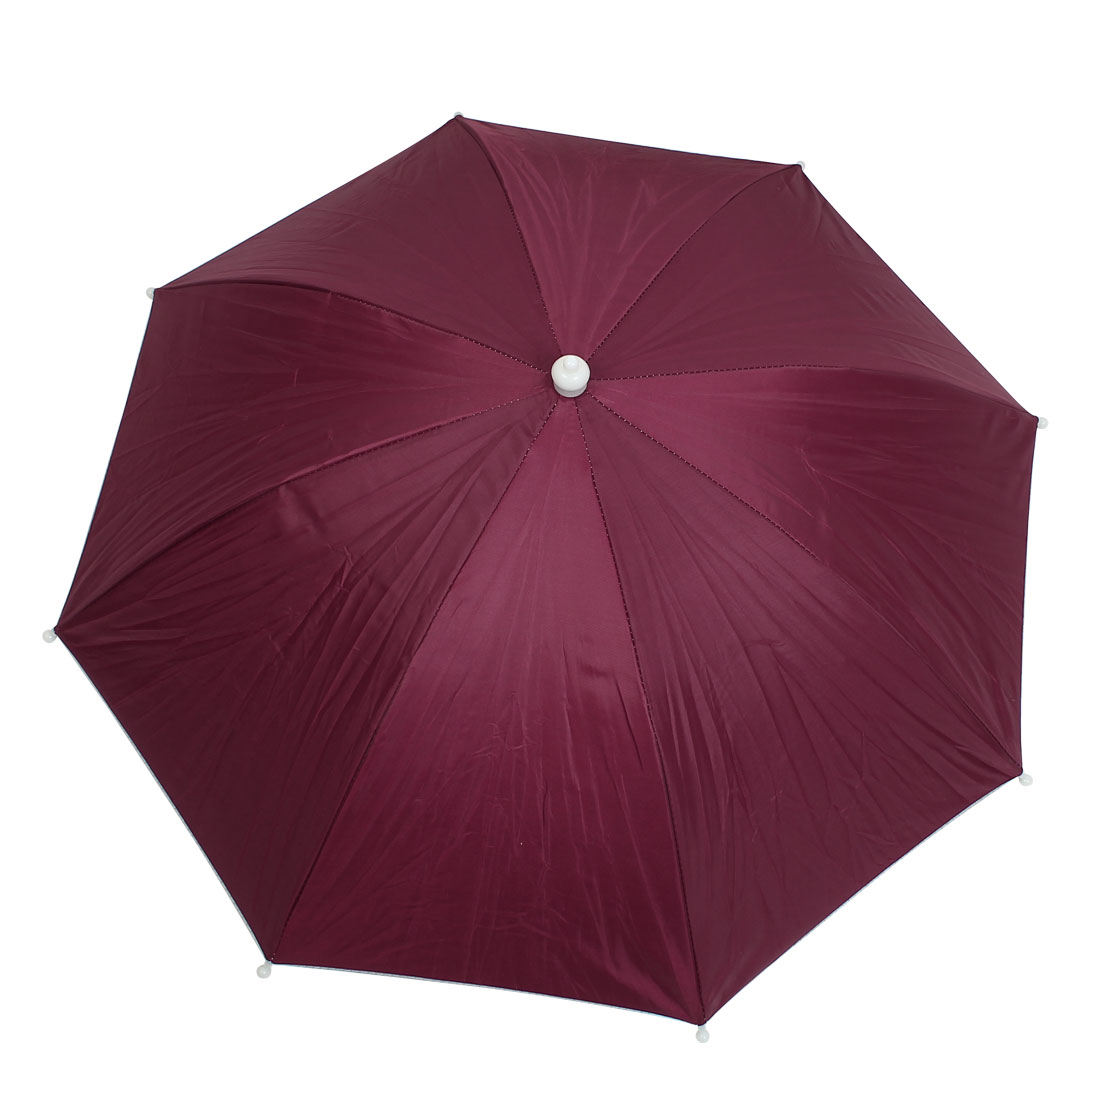 Outdoor Fishing Headwear Polyester Canopy Umbrella Hat Cap Burgundy